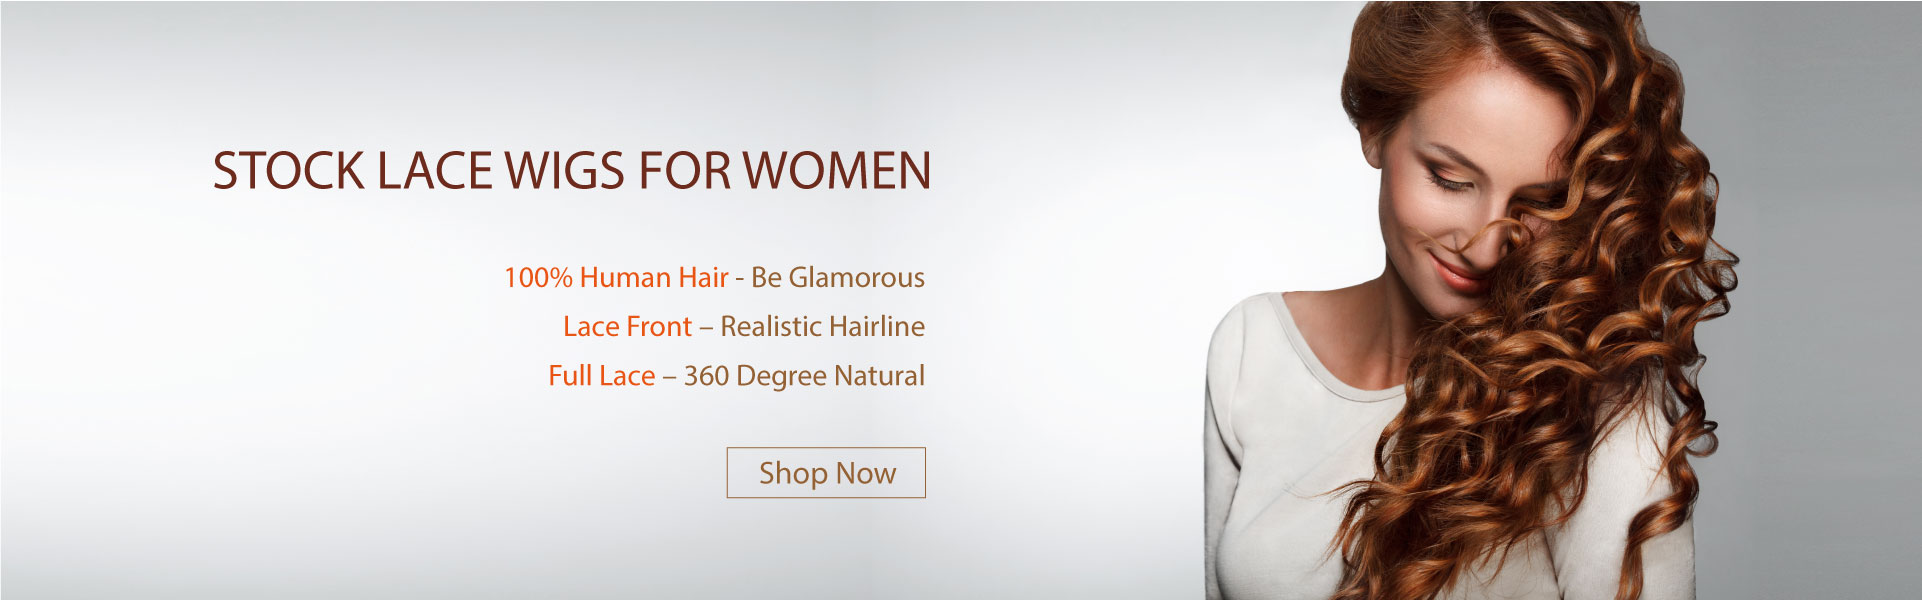 Stock lace wigs for women